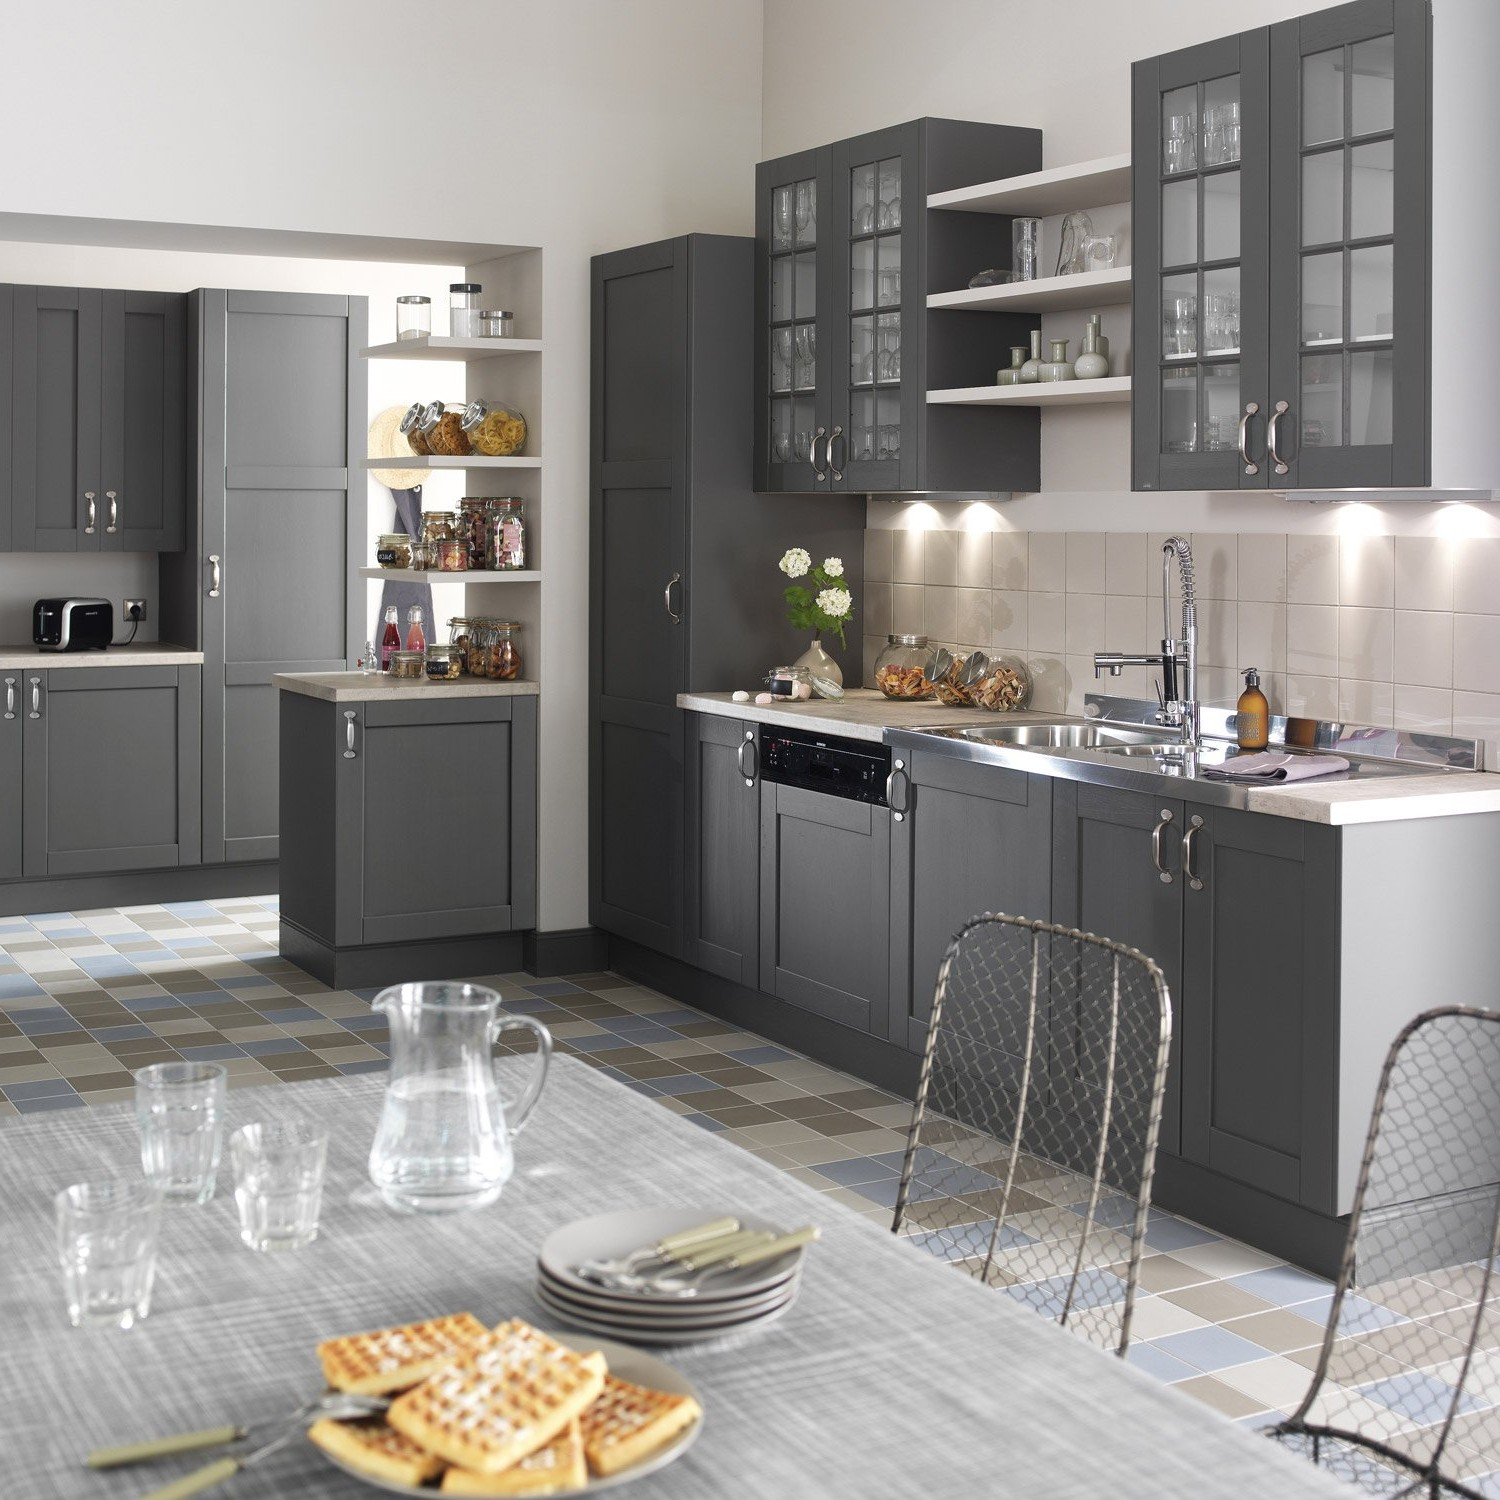 avis meuble de cuisine delinia cuisine id es de d coration de maison lmb8wmed53. Black Bedroom Furniture Sets. Home Design Ideas